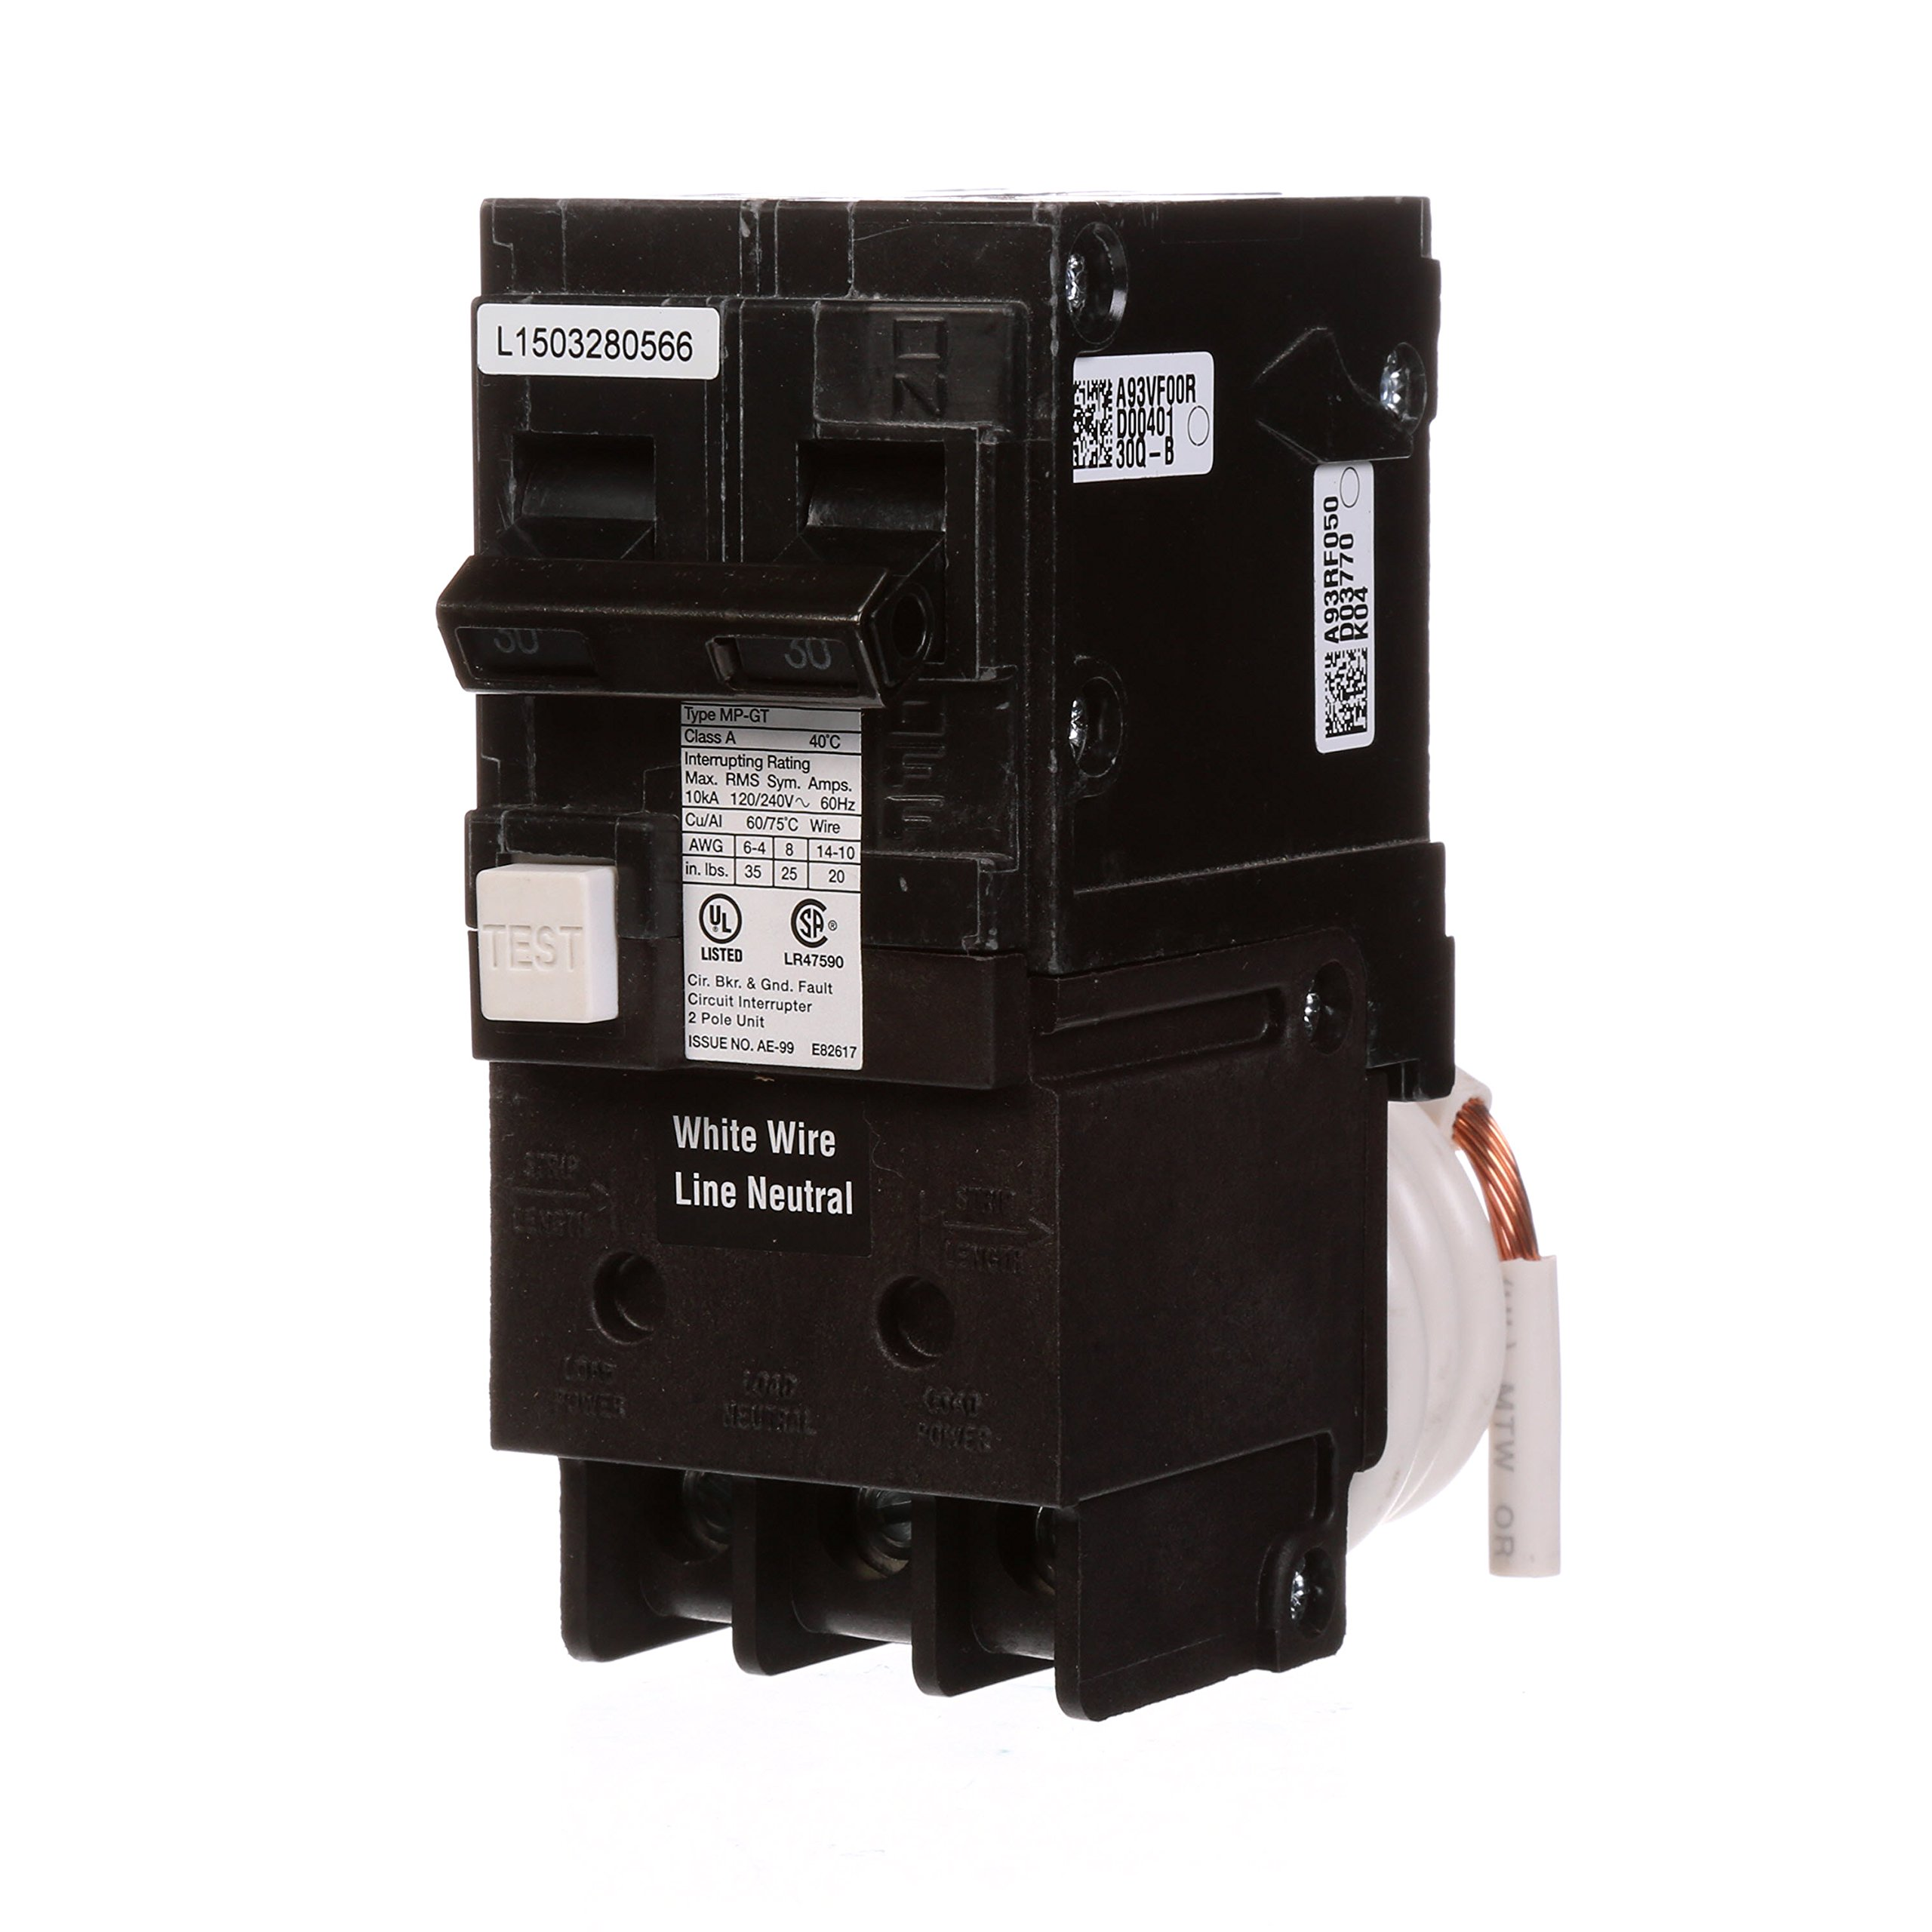 Murray MP230GFA 30 Amp 2-Pole Gfci Circuit Breaker with Self Test & Lockout Feature